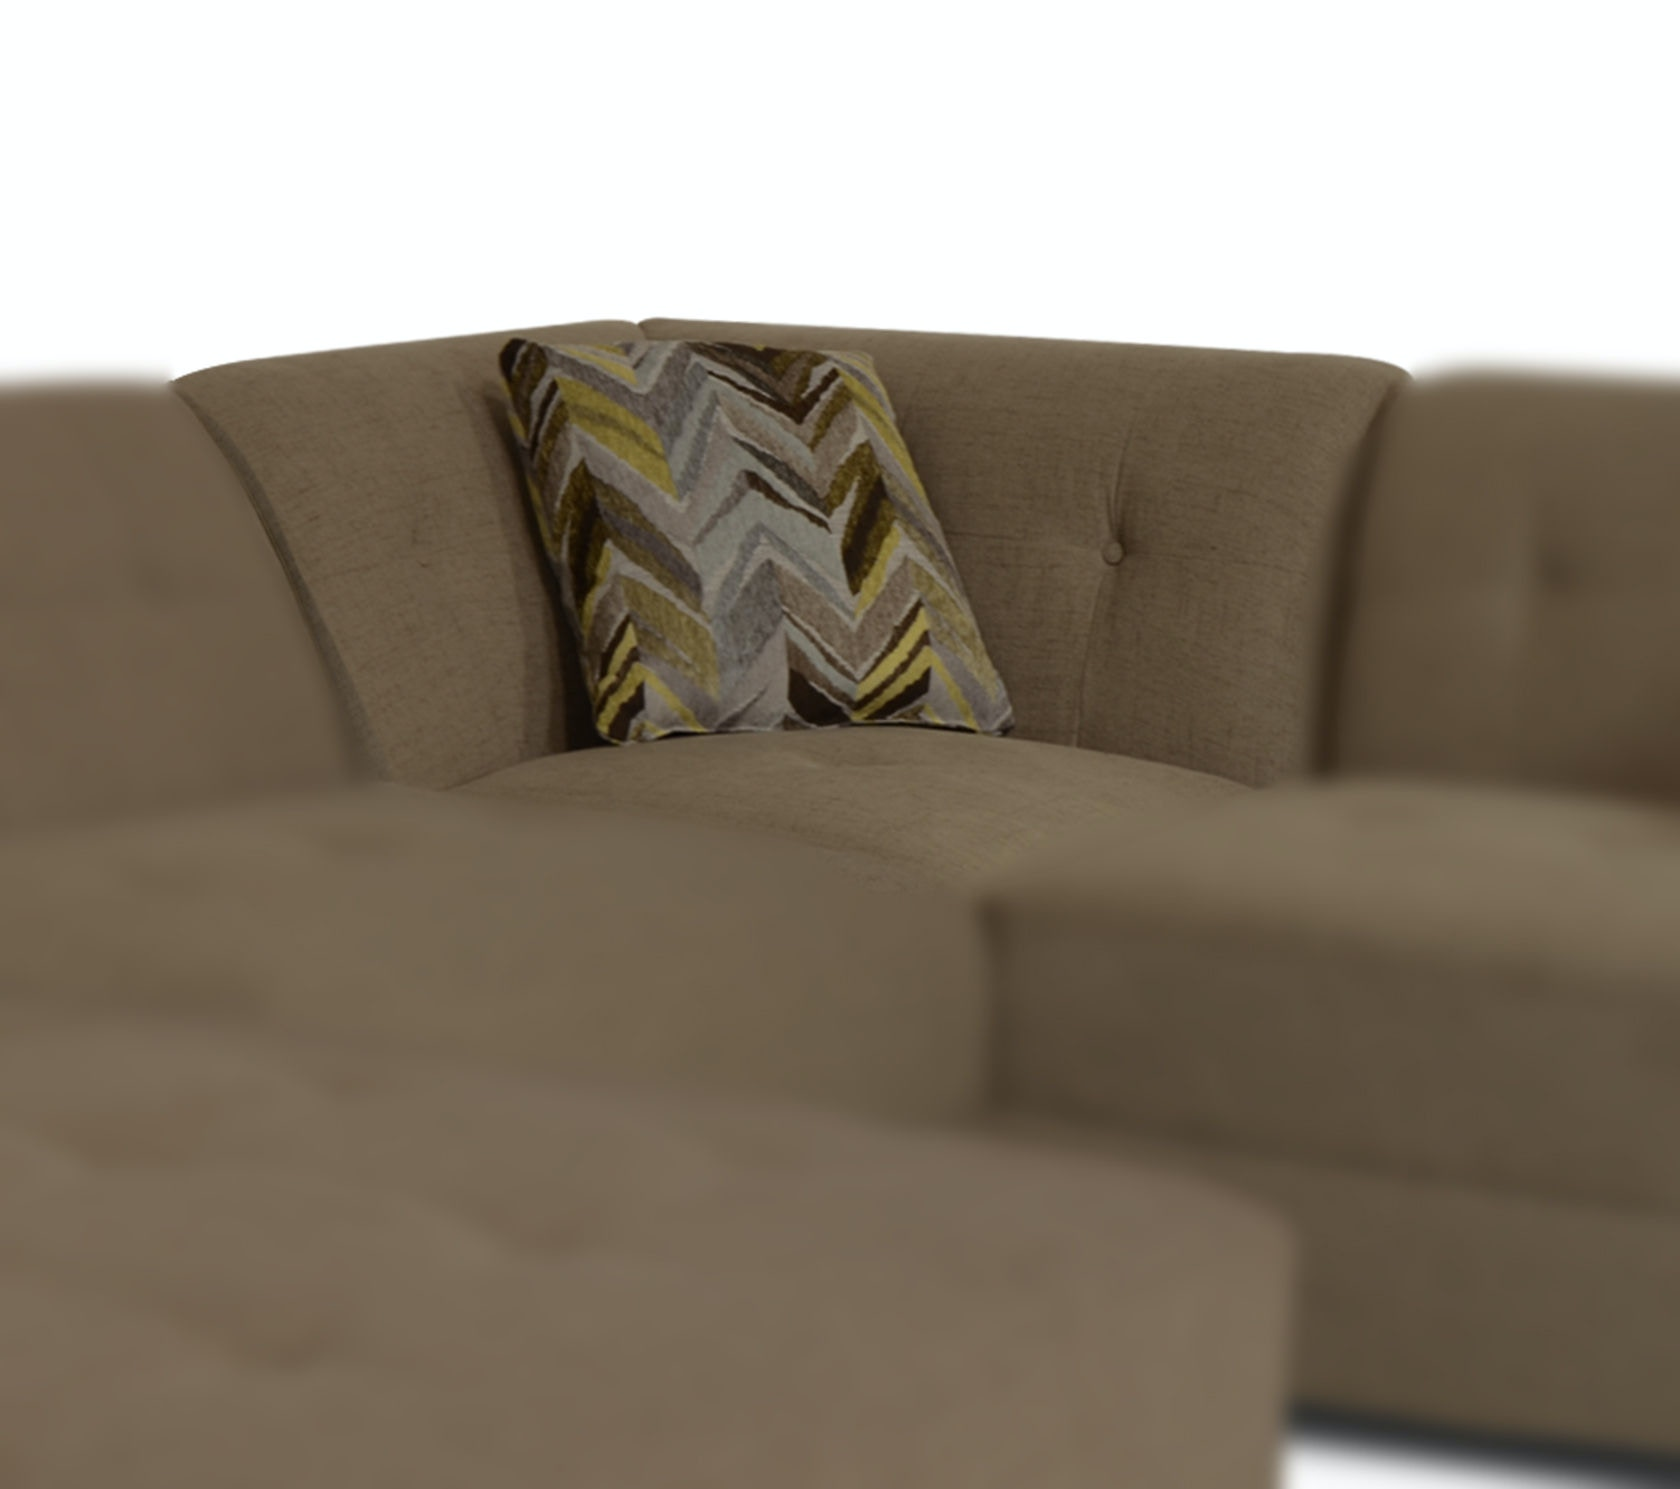 custom sectional sofa where to buy cushion cover in singapore by england you pick the color and fabric 200 fabrics we can build this unit fit just about any space 4m00 at sides furniture